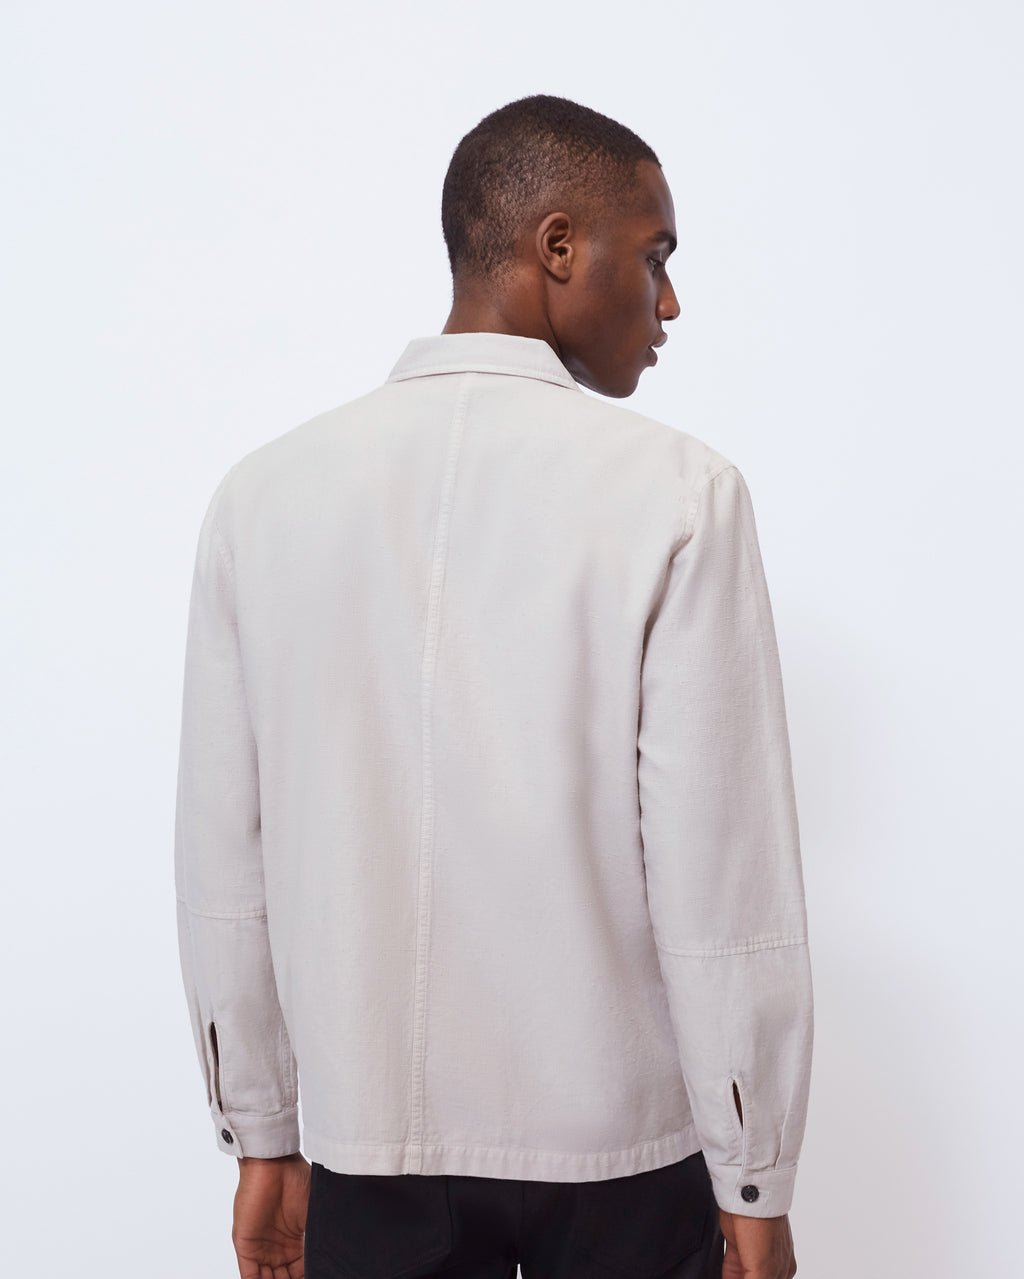 The Bowens Jacket in Stone